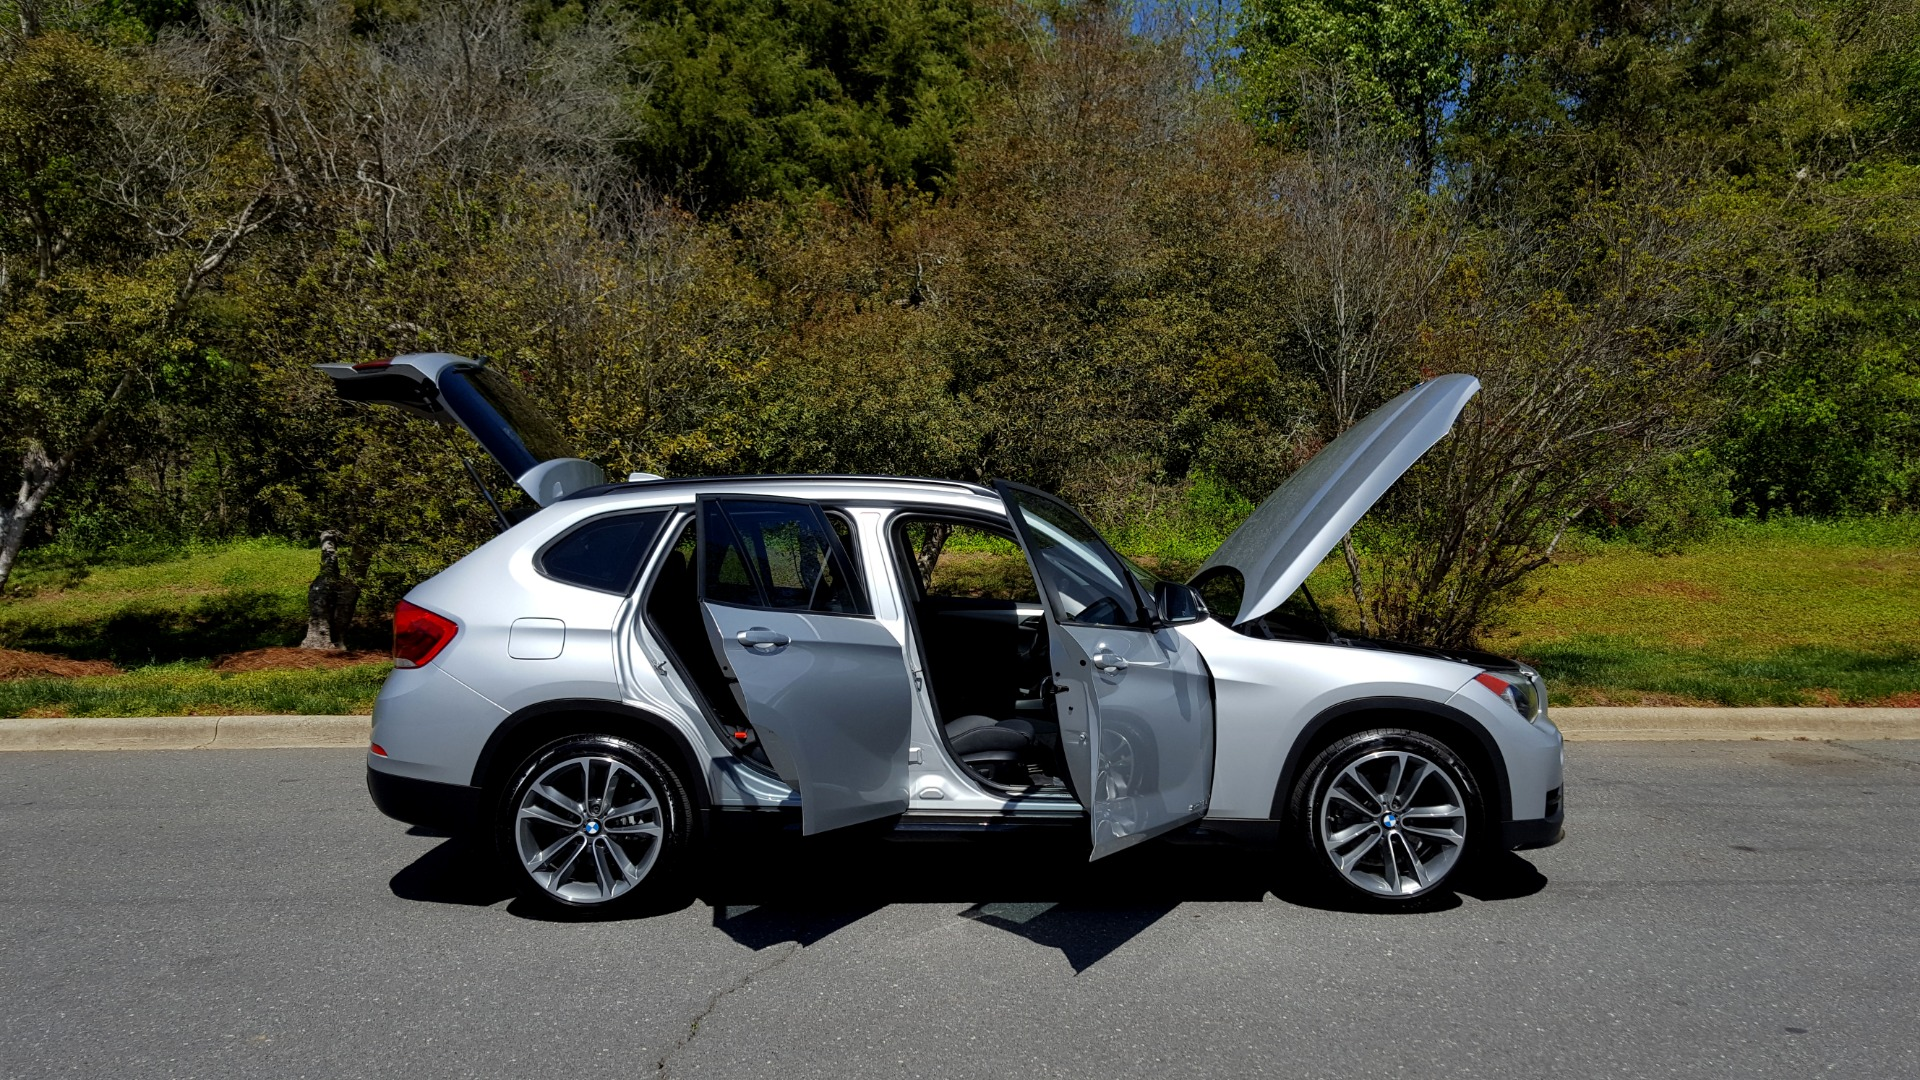 Used 2015 BMW X1 SDRIVE28I / SPORT LINE / PANO-ROOF / HTD STS / DUAL-ZONE CLIMATE for sale Sold at Formula Imports in Charlotte NC 28227 11